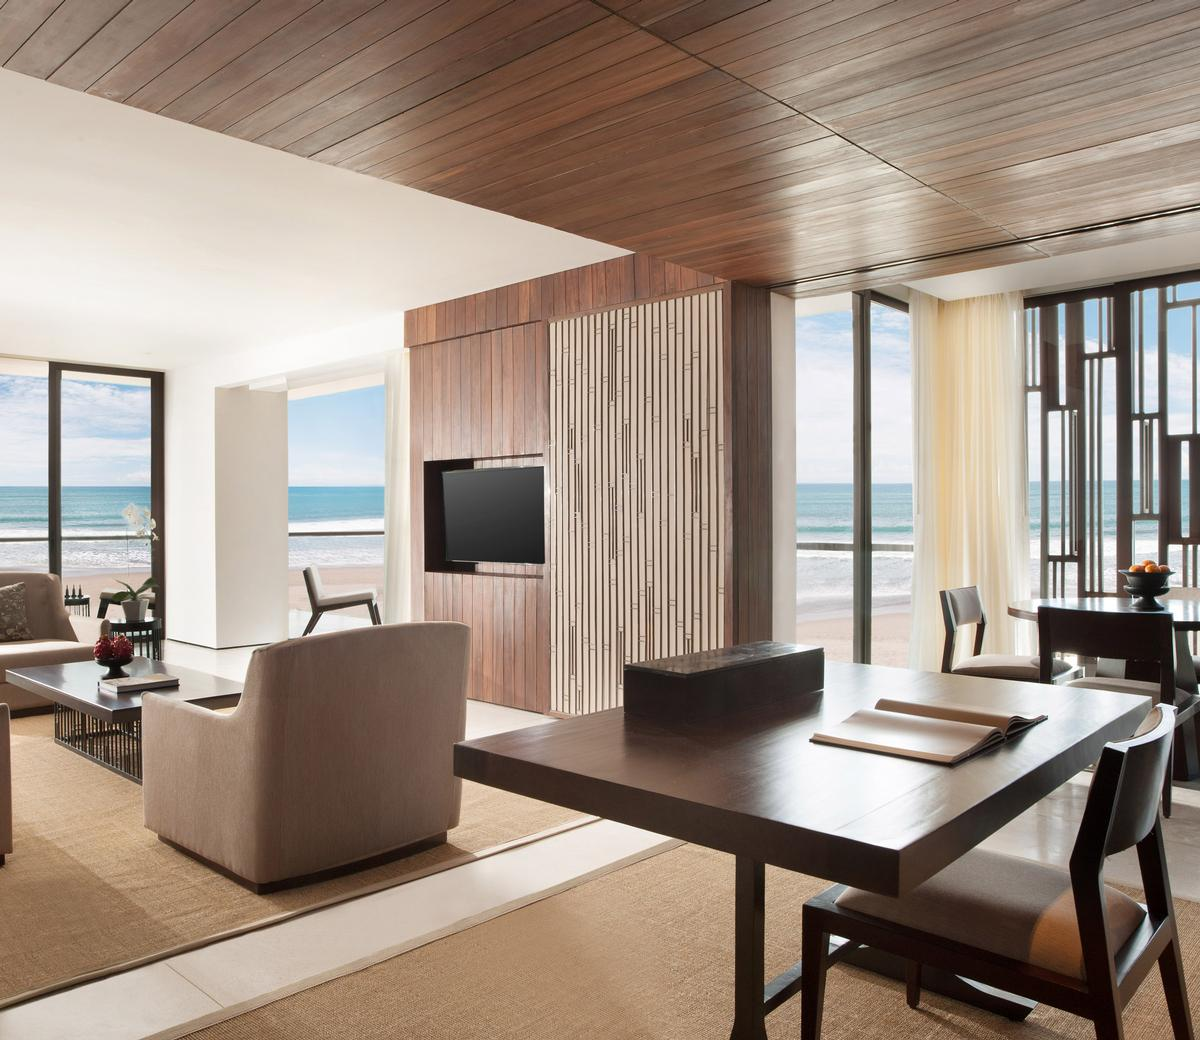 The Alila Seminyak includes 240 bedrooms with contemporary styling / Alila